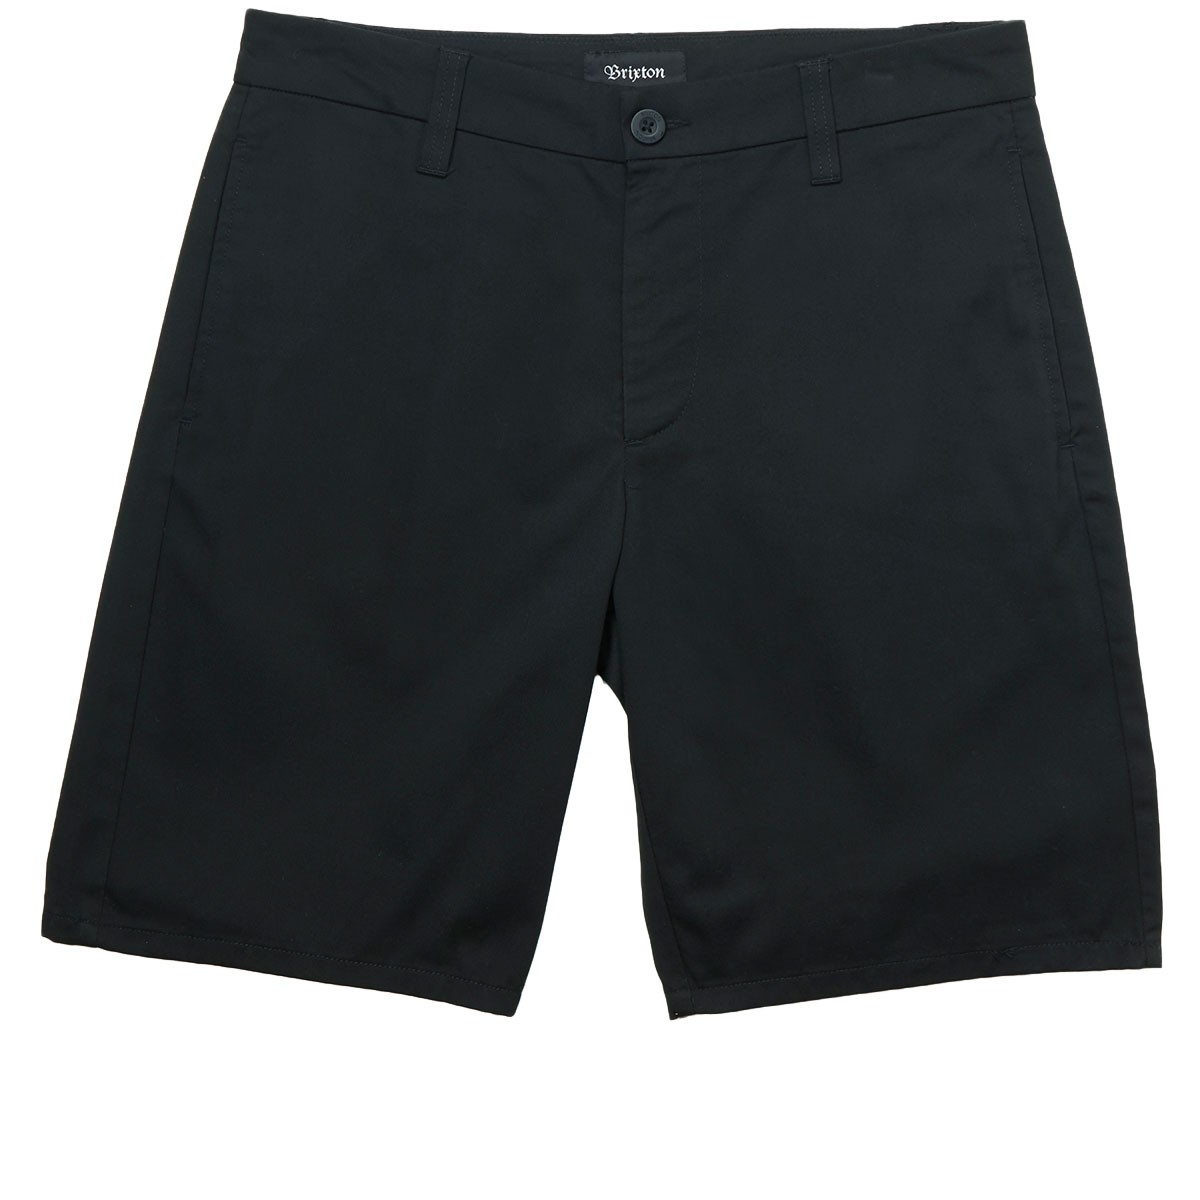 Kingpin Skate Supply Walk Shorts Black FREE POST New Mens Skateboard Bottoms Daks